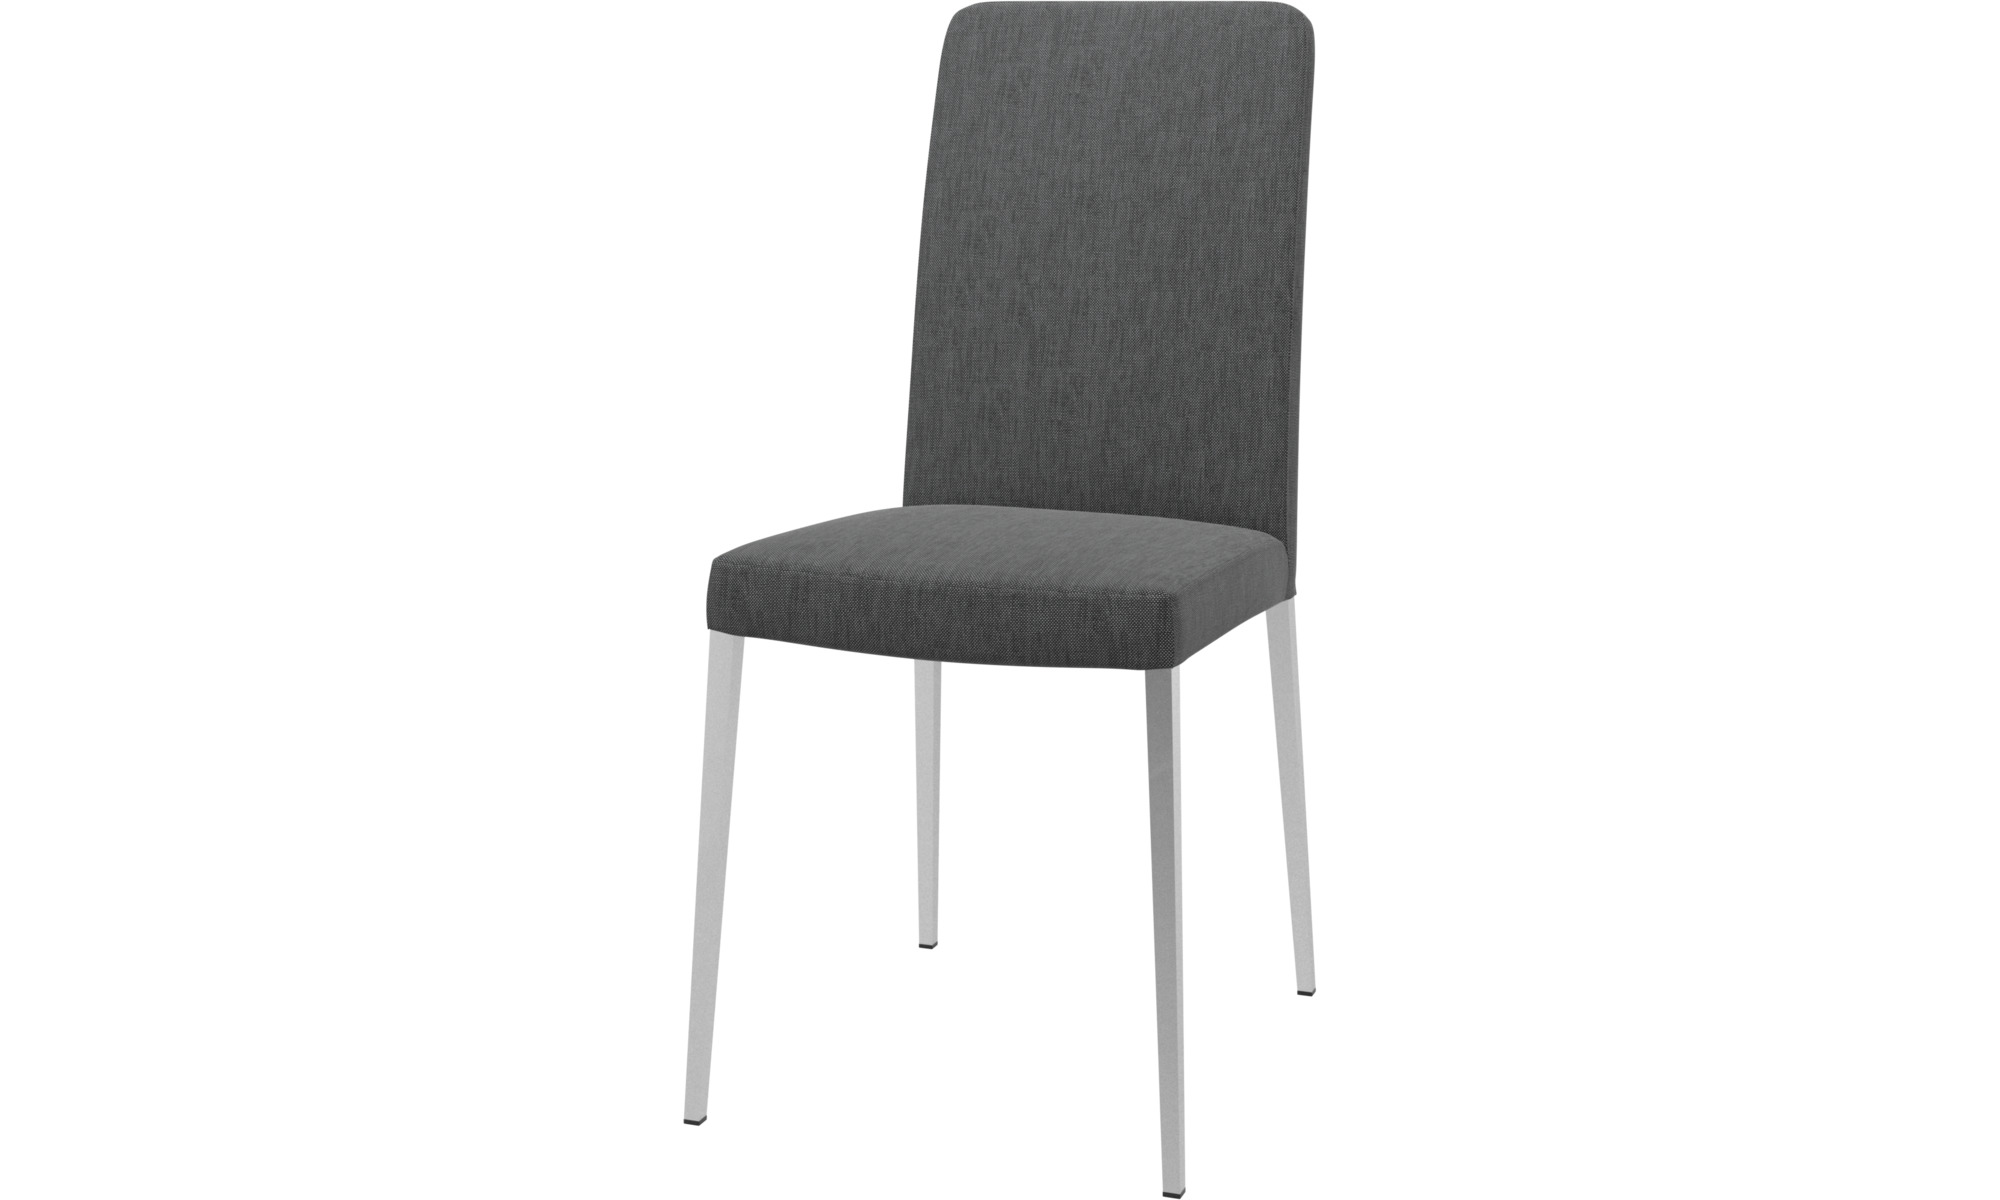 Dining chairs - Nico chair - Grey - Fabric